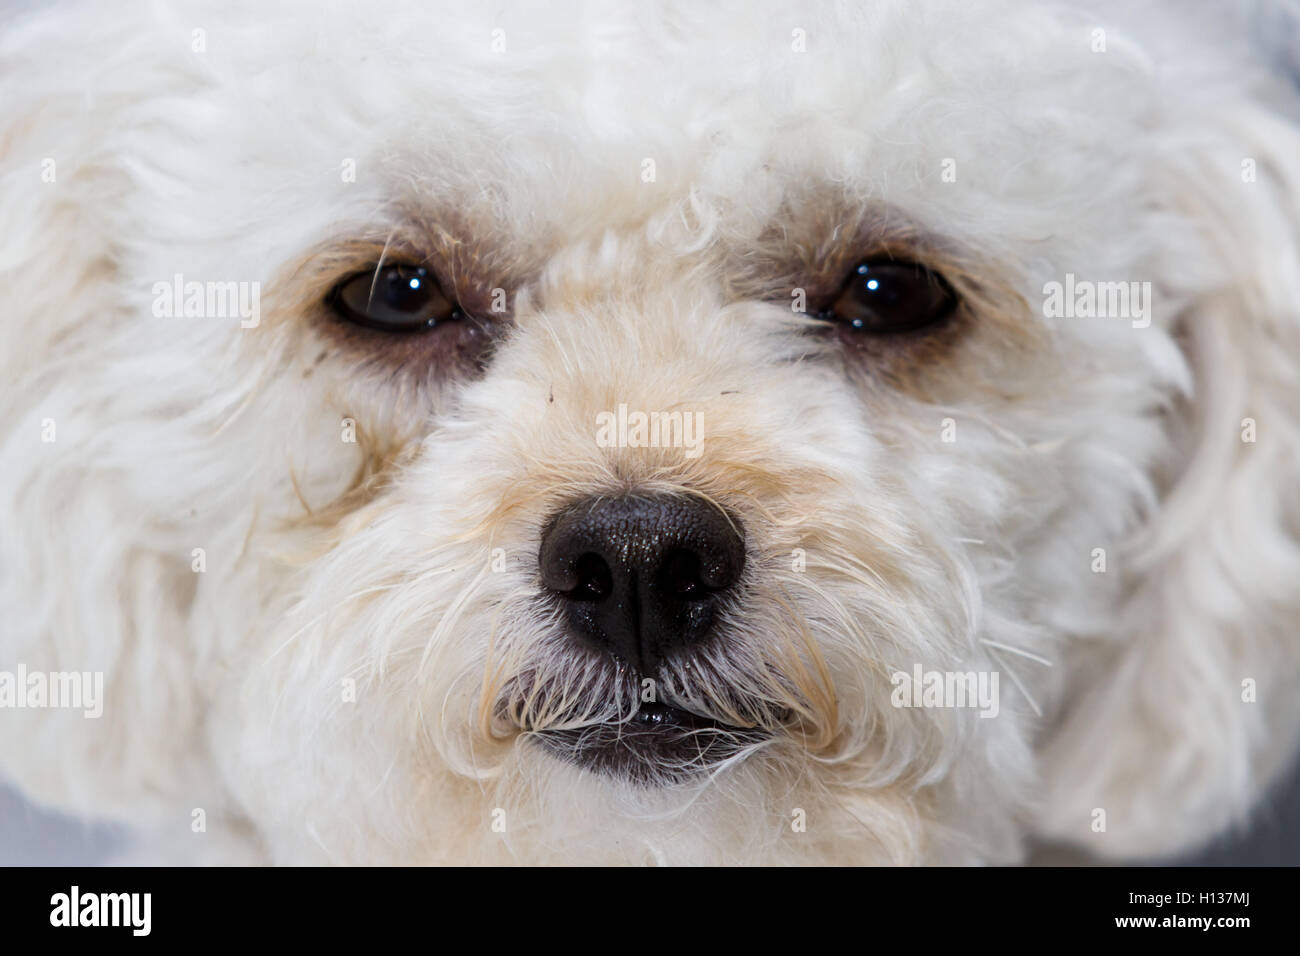 Close Up Of A Cute White Mini Toy Poodle With A Sad Facial